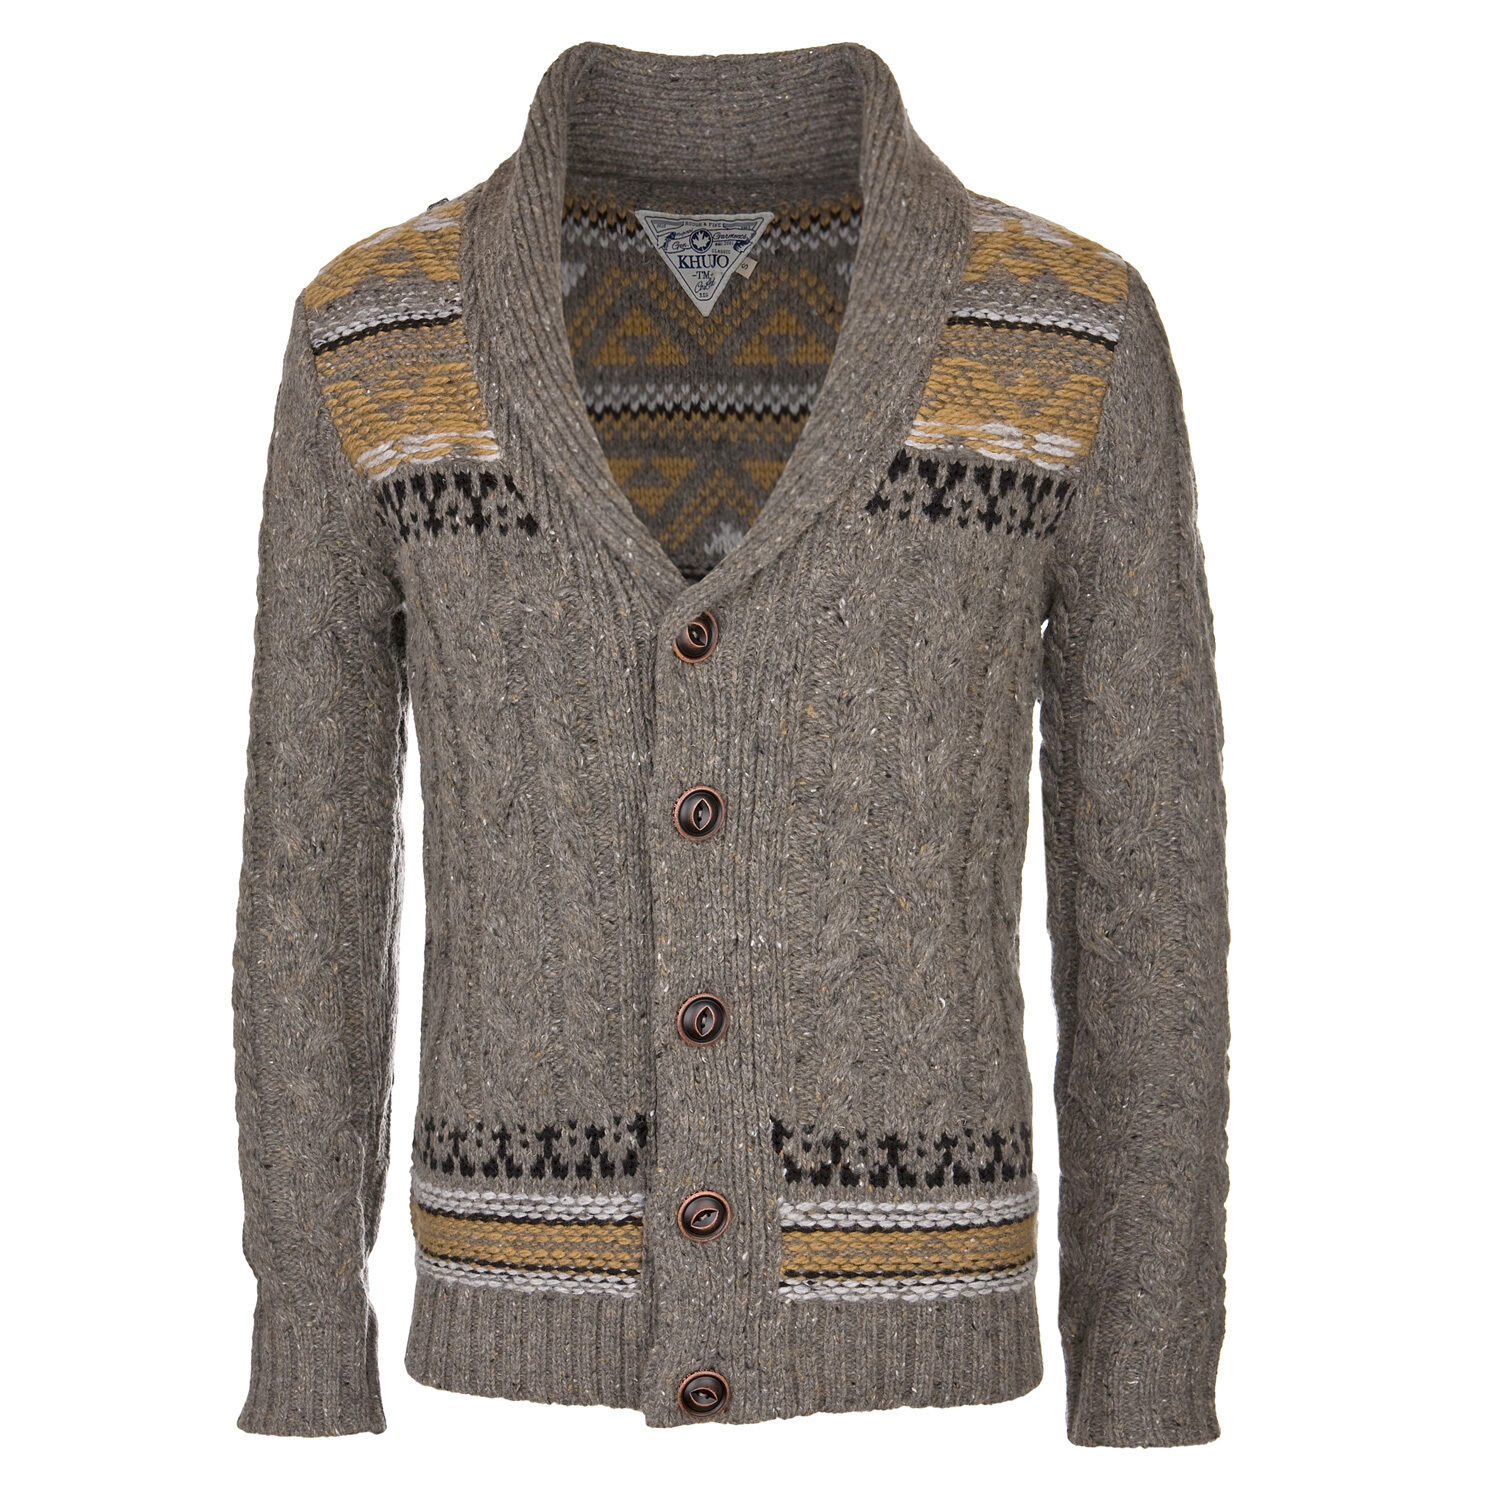 Khujo Pals Sweater Grey - Men's Knitted Jumper in Cardigan Style